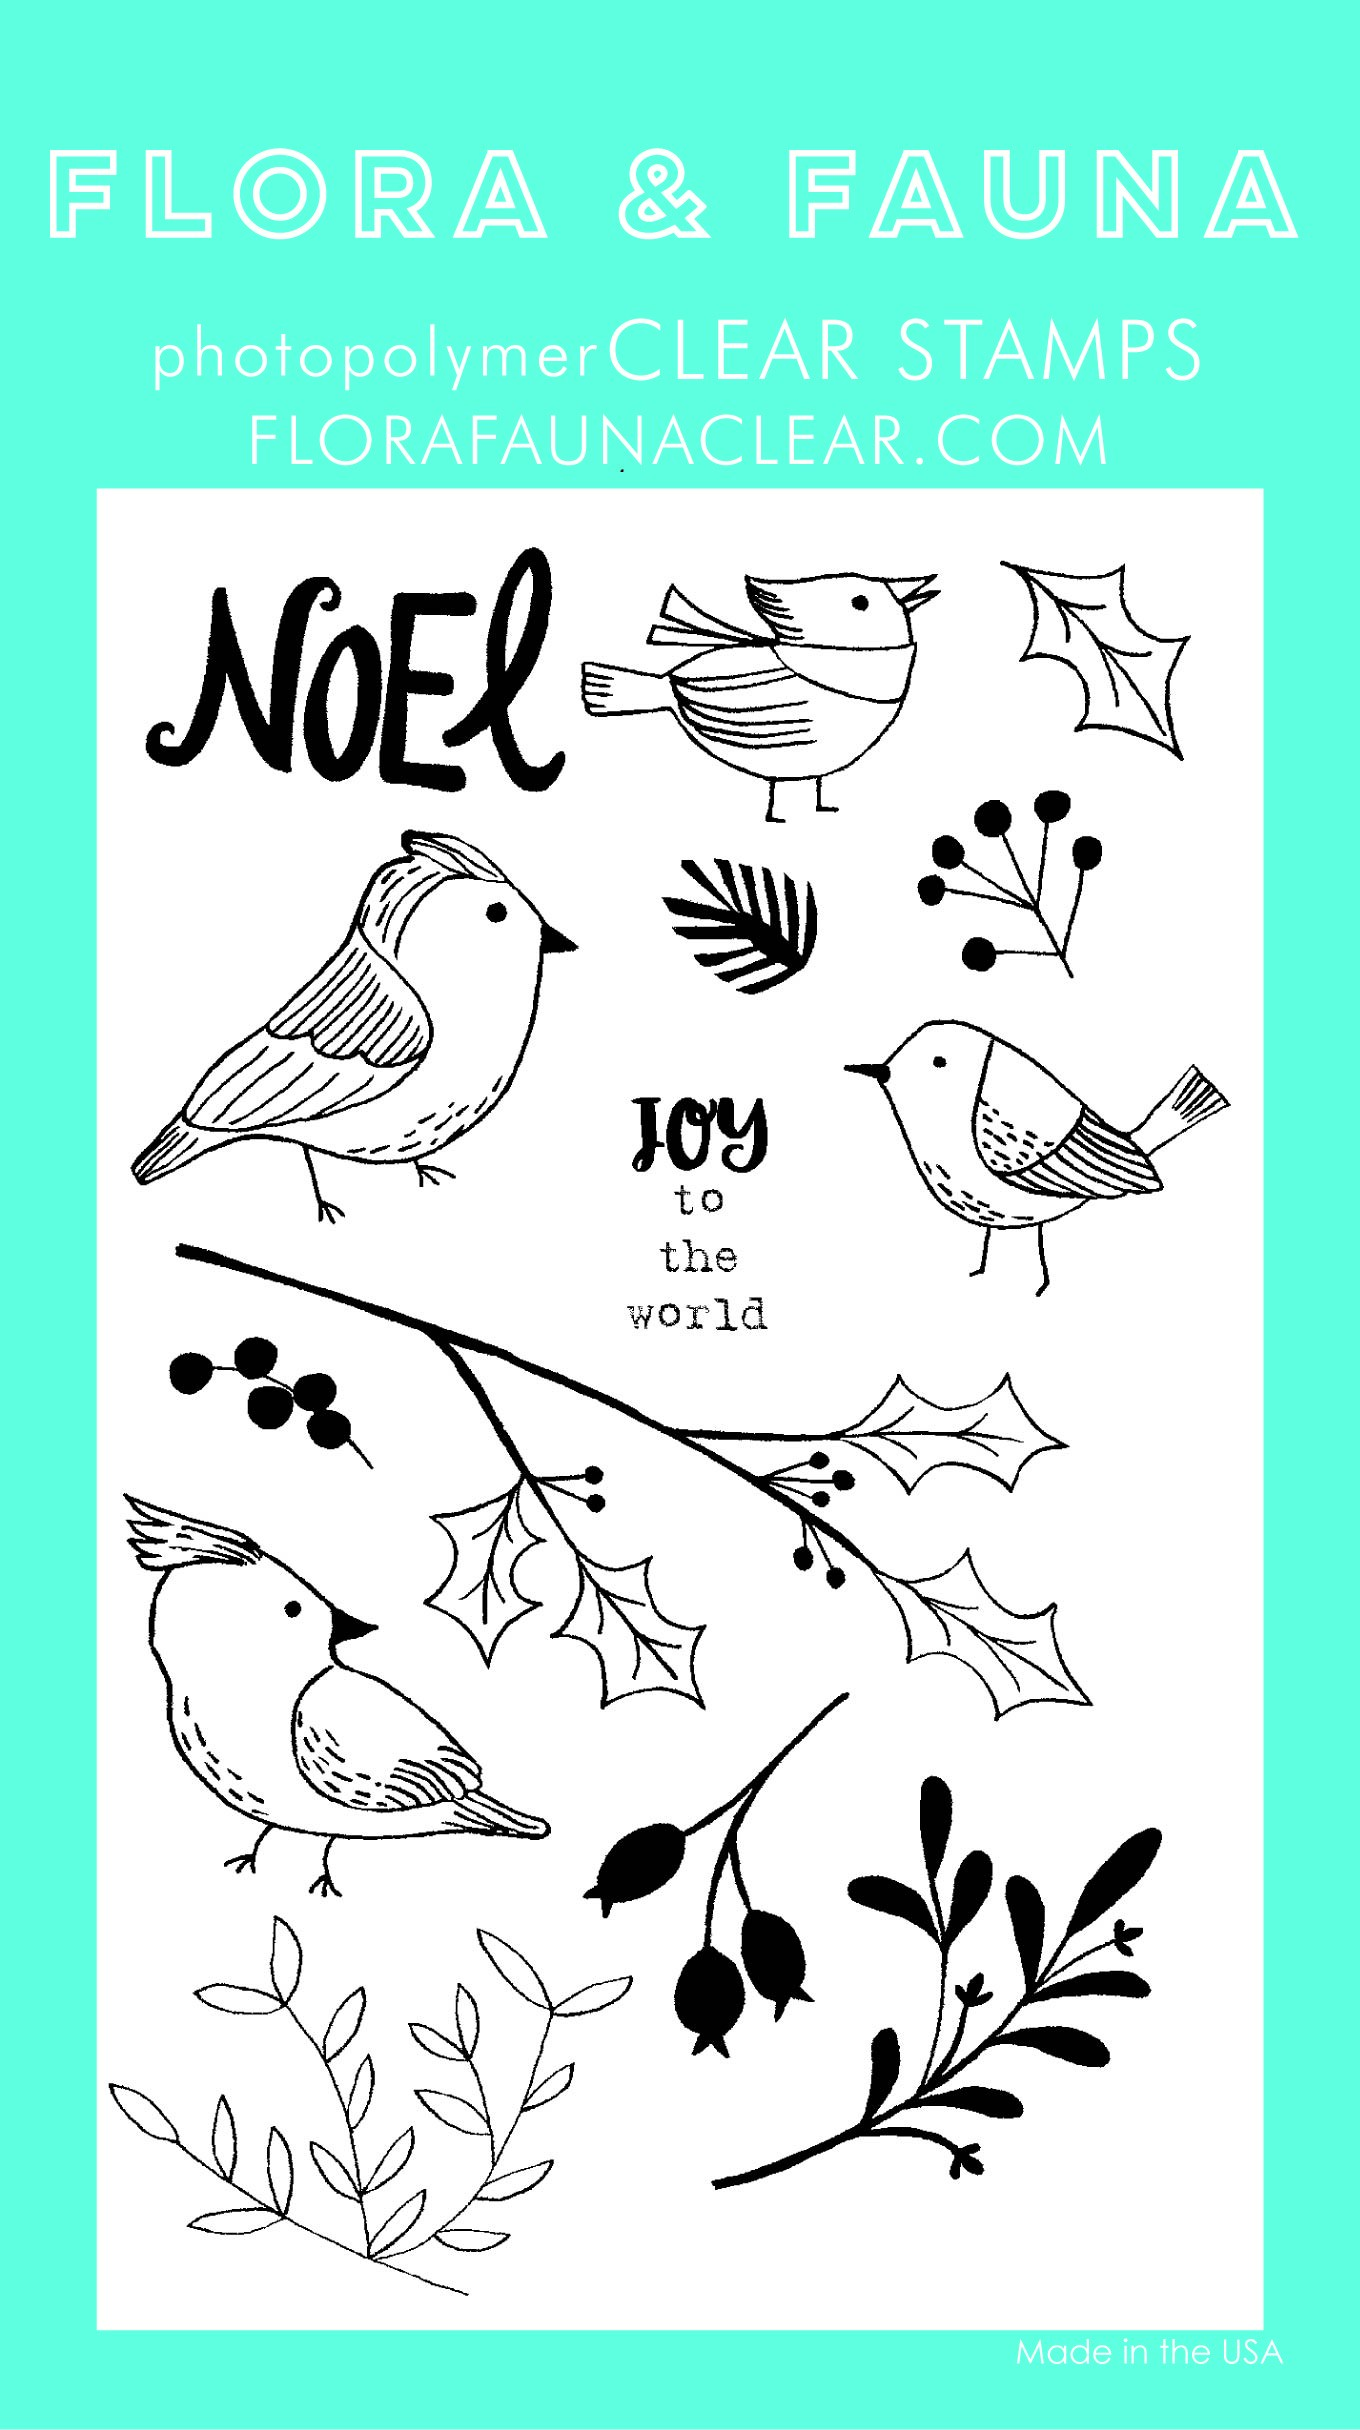 Flora & Fauna Winter Aviary Clear Stamp Set